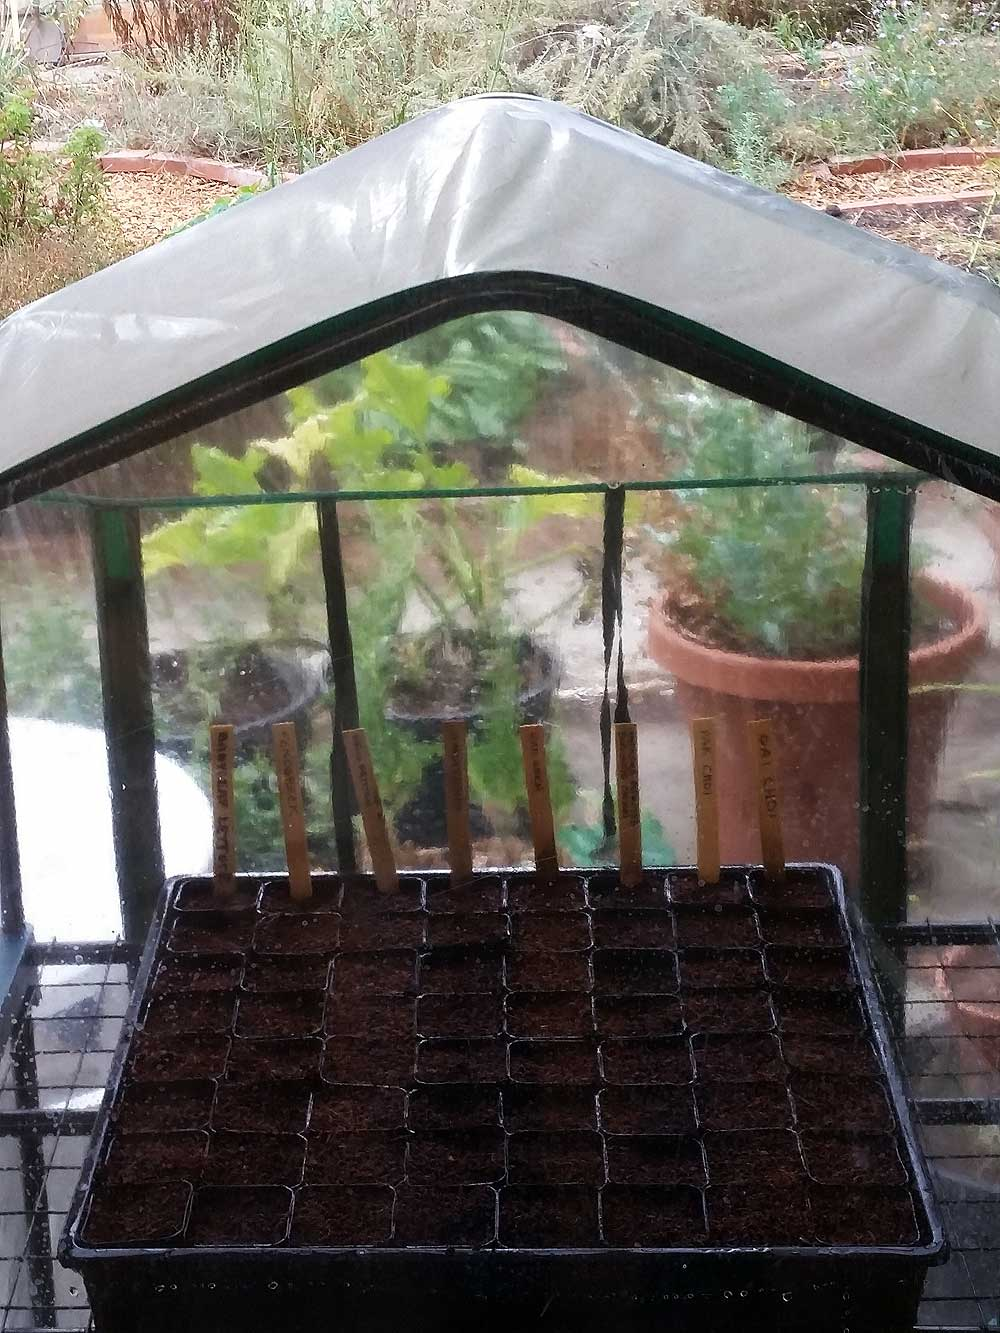 Flat in small greenhouse